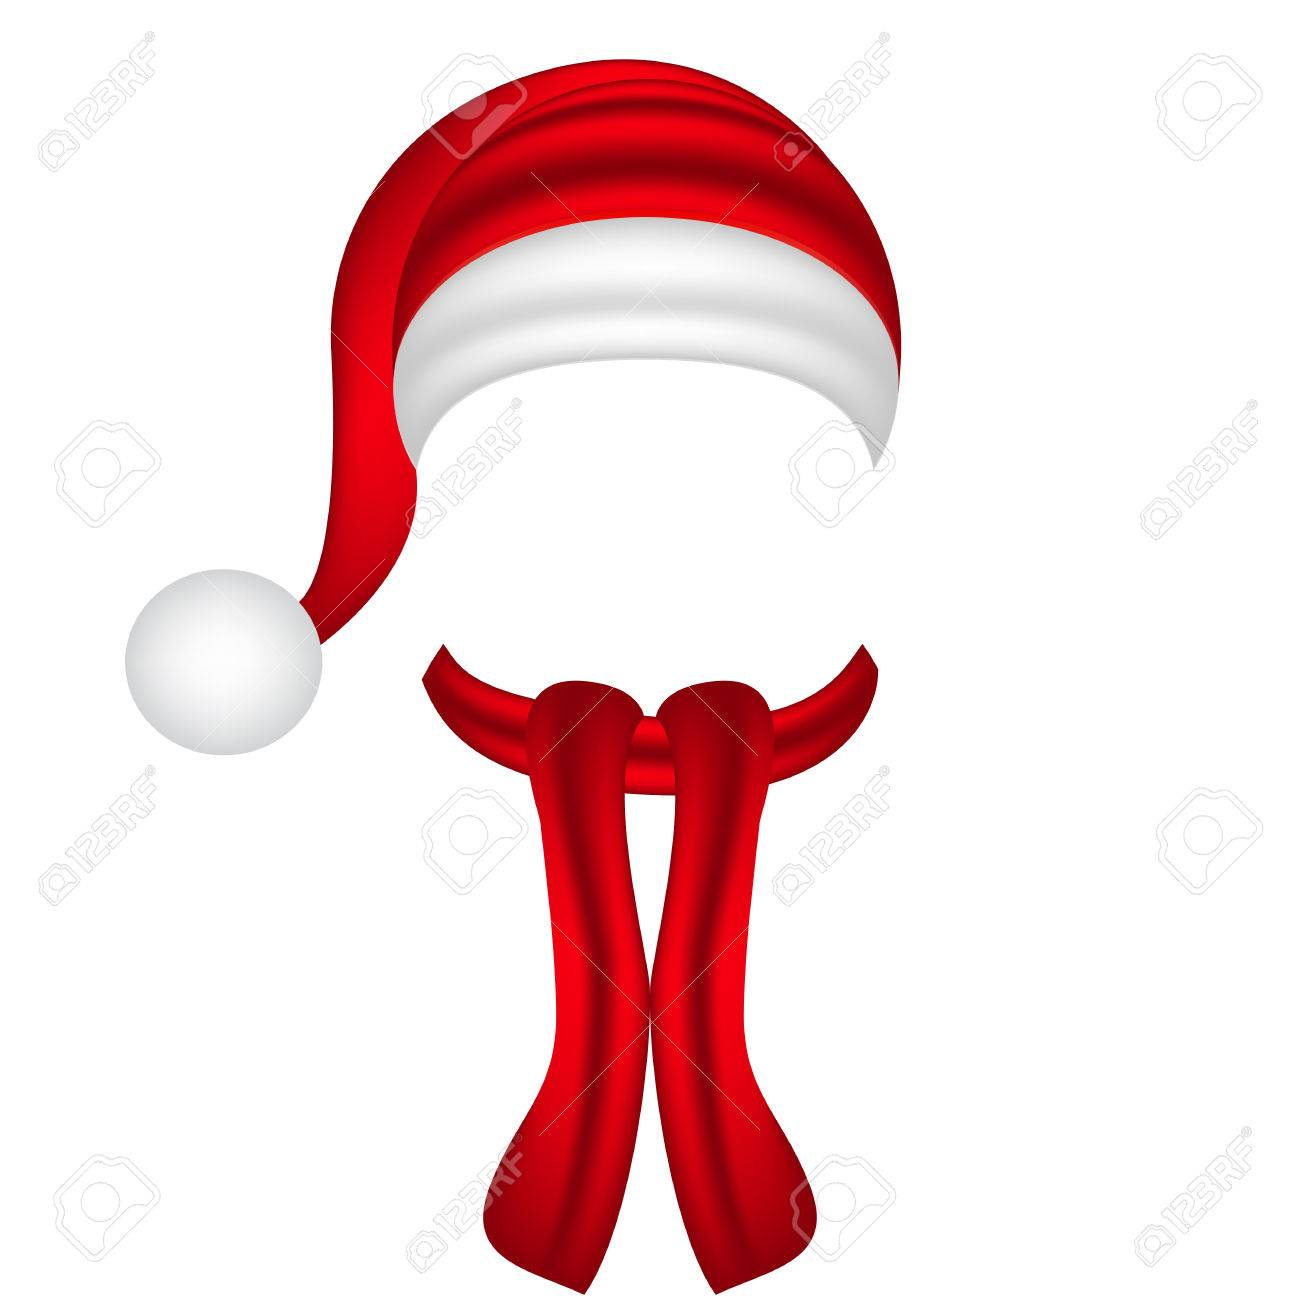 scarf and hat of Santa Claus - 49391903